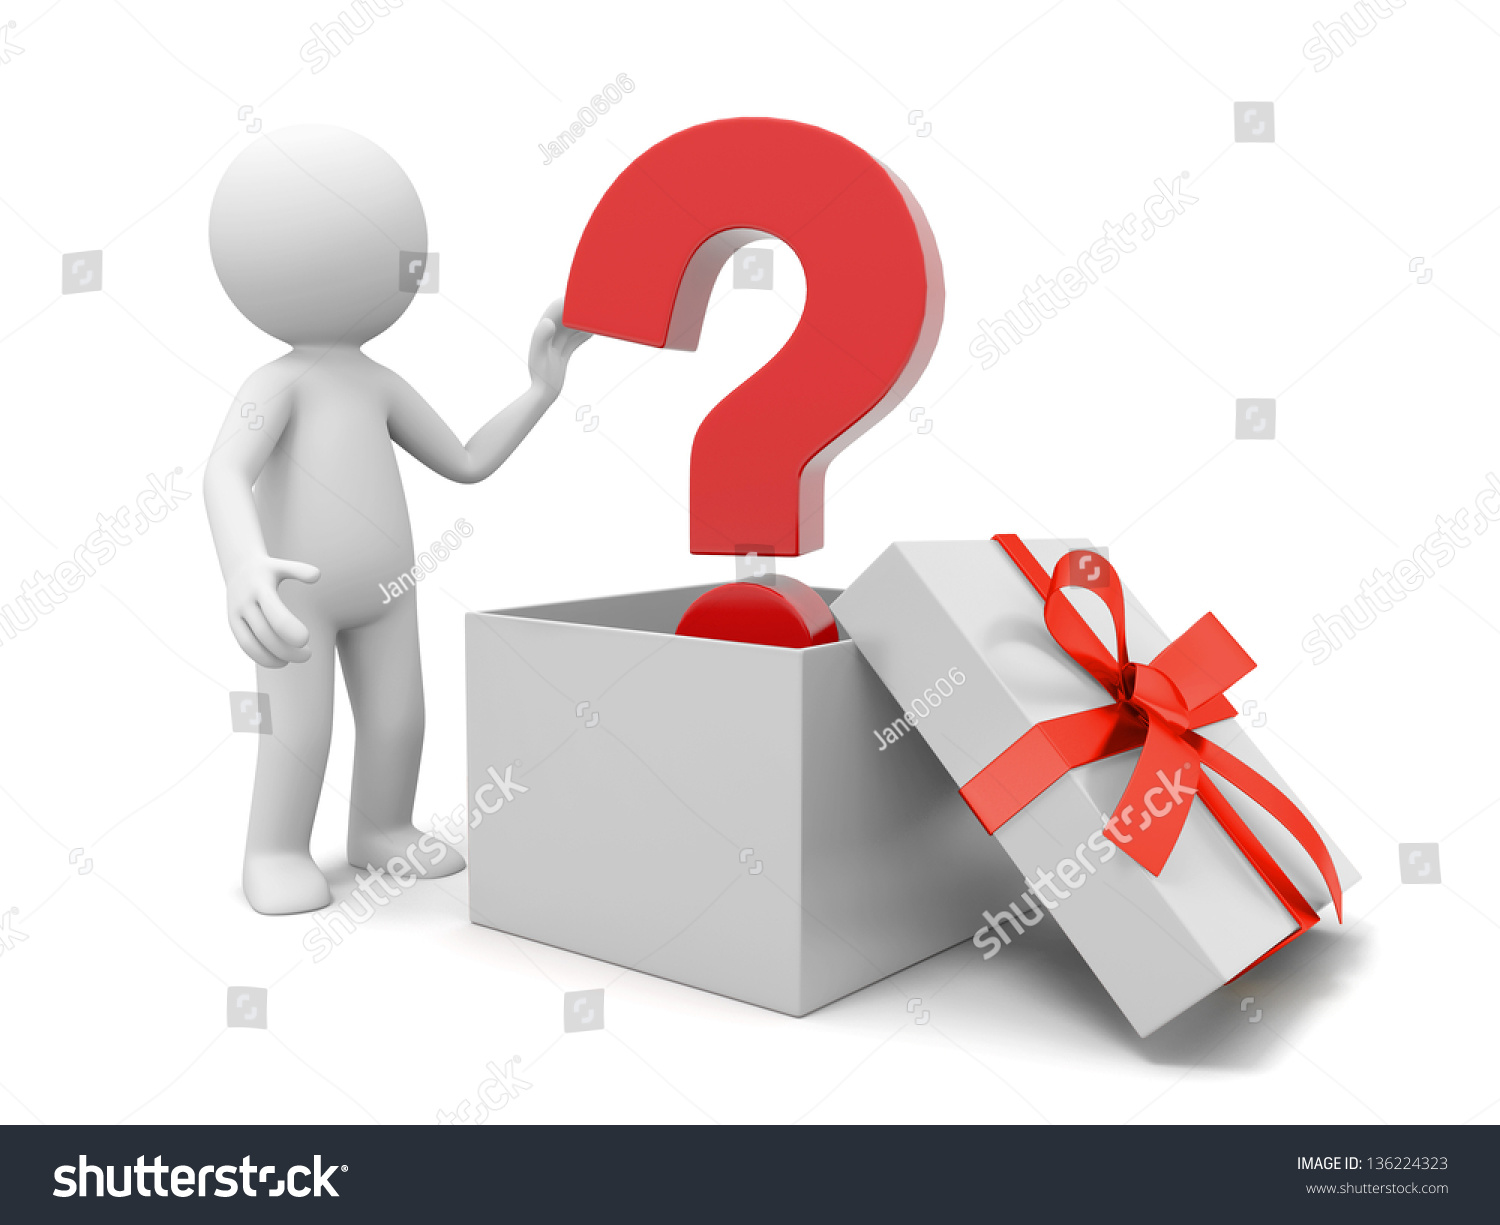 3d person with magnifying glass and question mark stock images image - A 3d Person Taking A Question Mark From A Gift Box